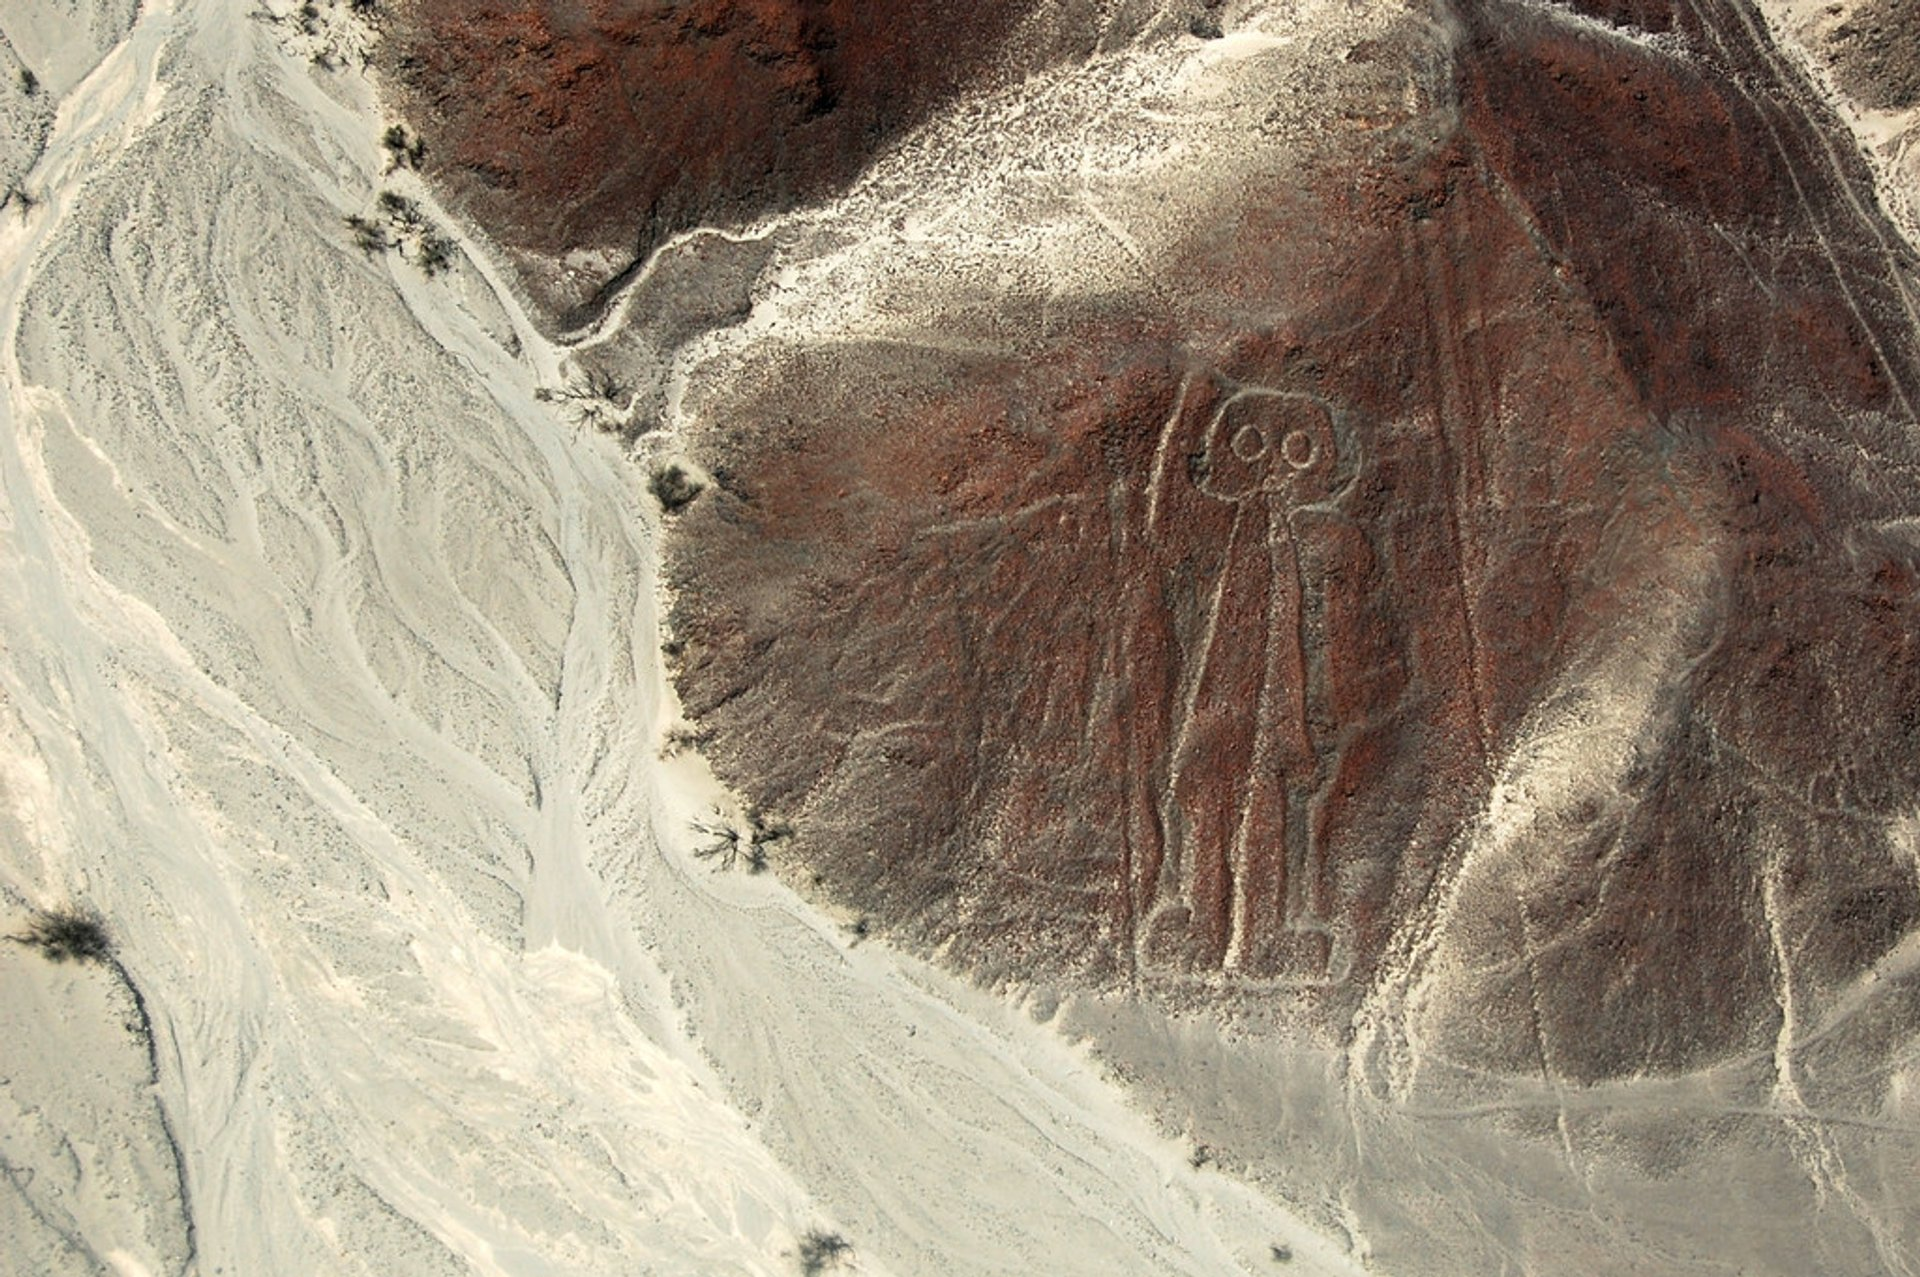 Flying over the Nazca Lines during the Dry Months in Peru - Best Season 2020